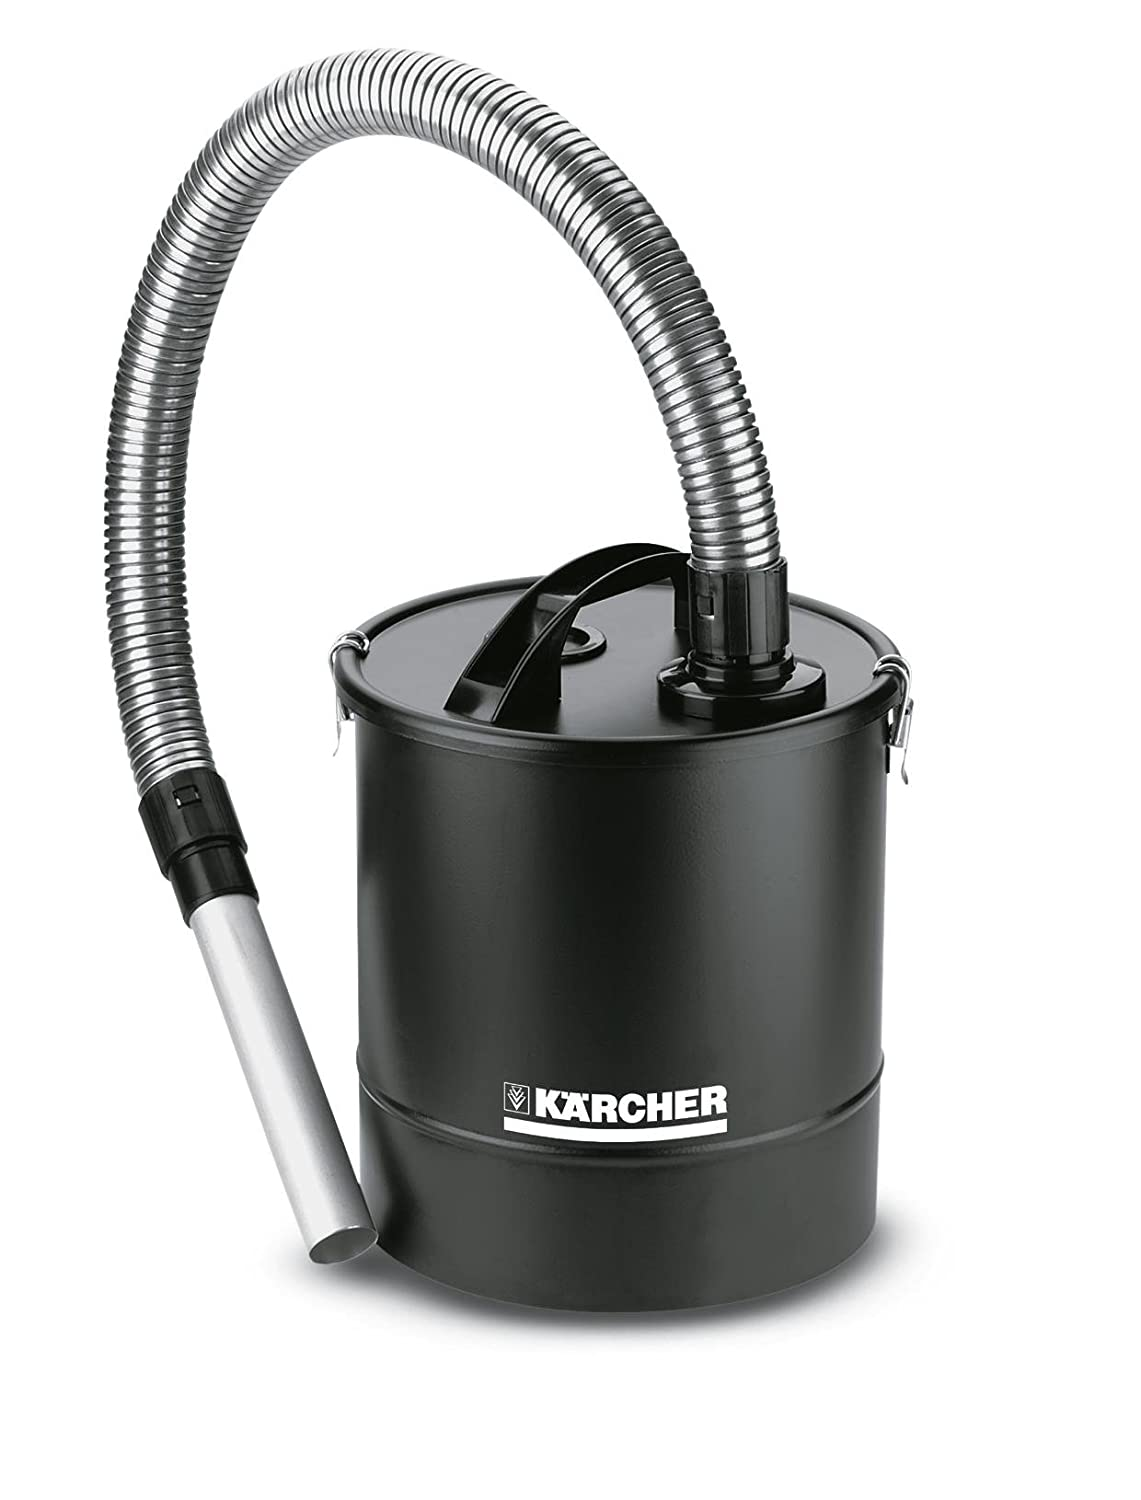 Kä rcher Basic Coarse Dirt / Ash Filter Kärcher 2.863-139